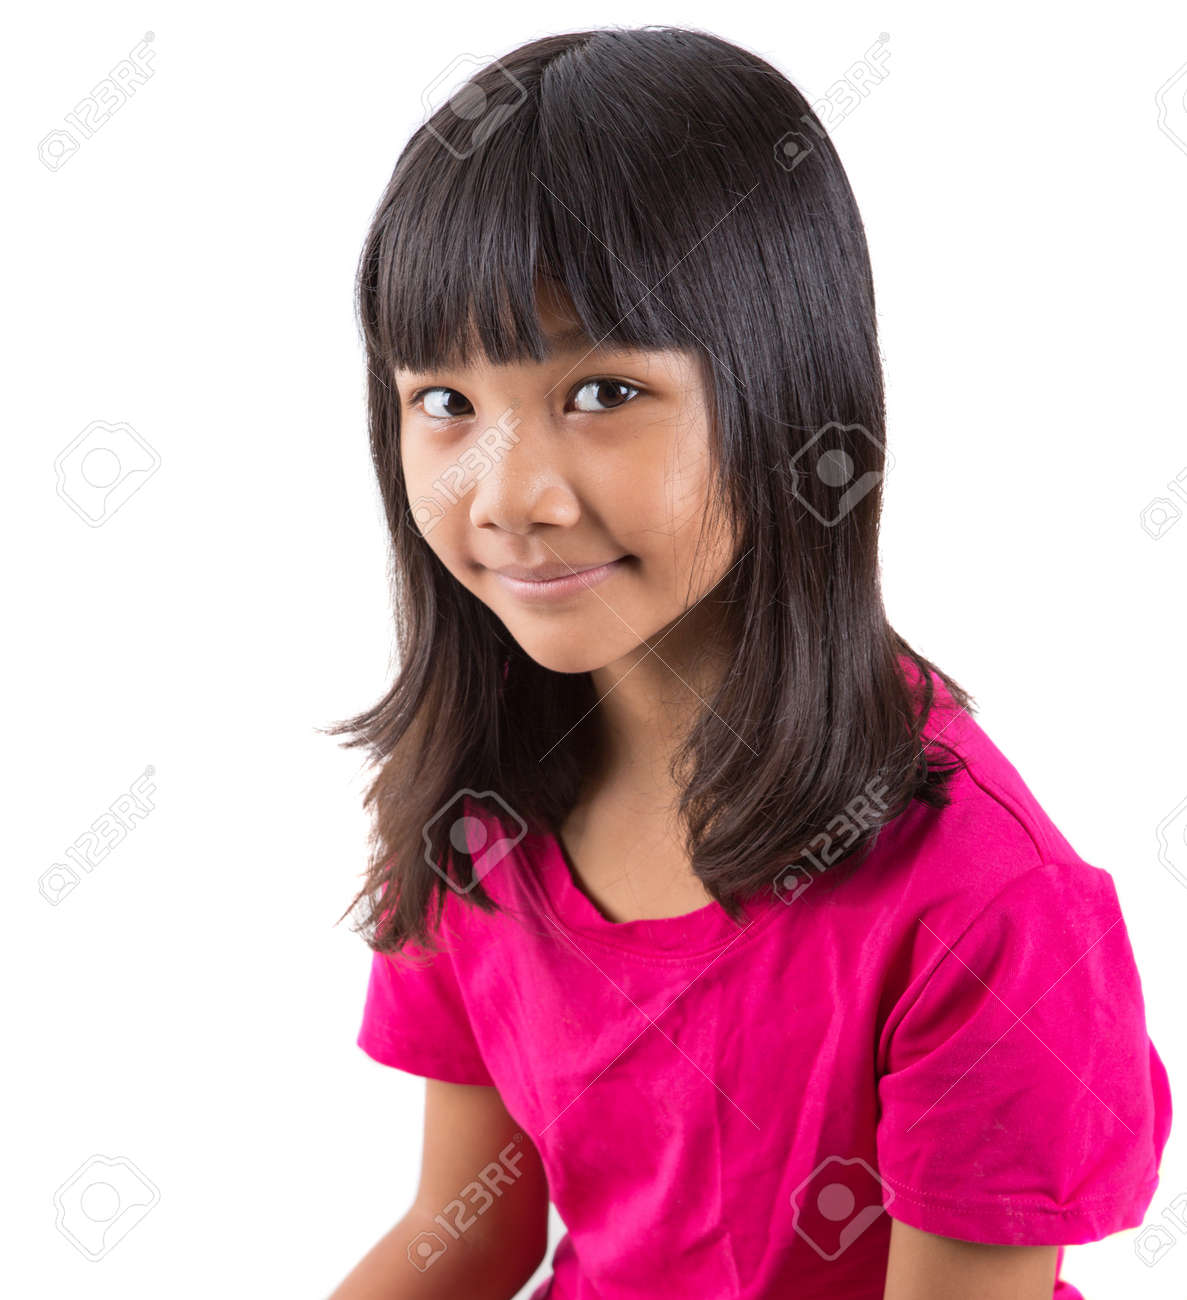 black preteen Stock Photo - Young Asian preteen girl in pink t-shirt over white background